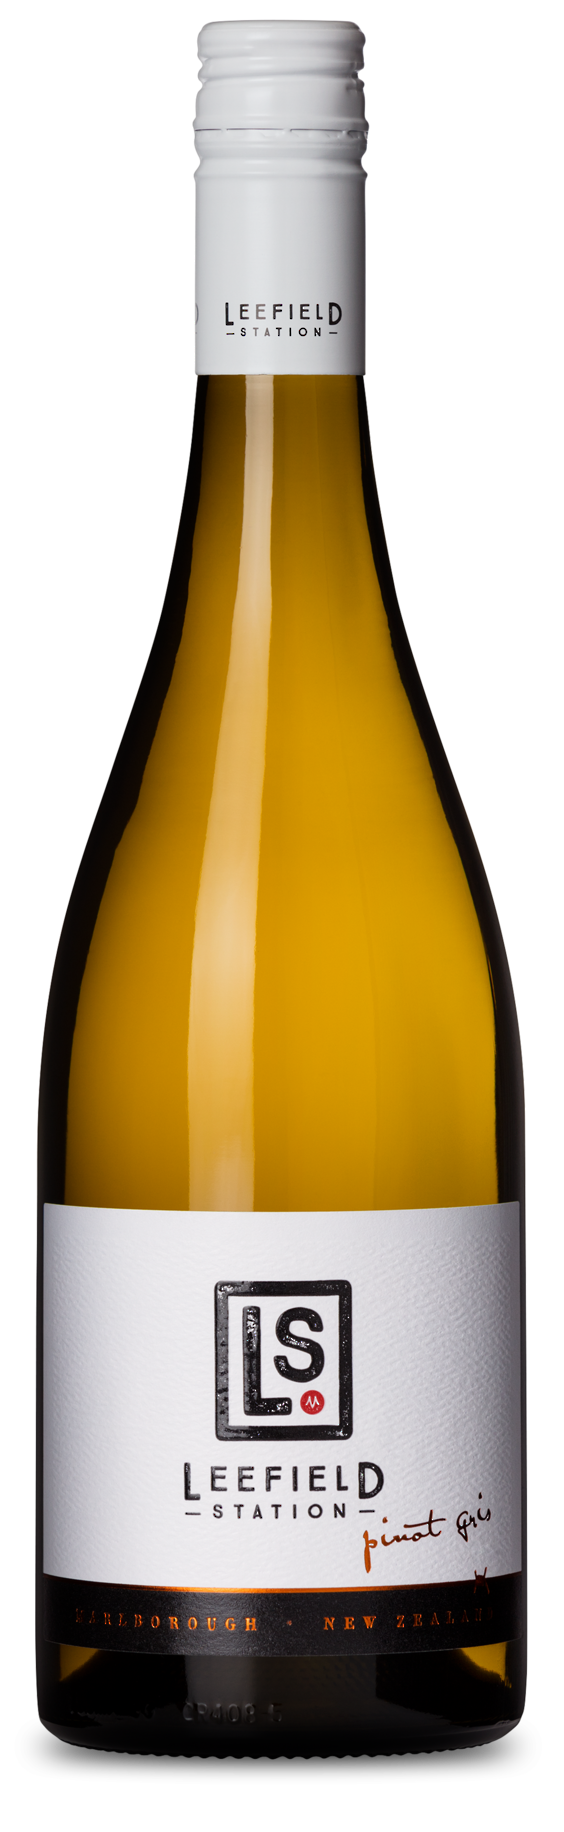 Leefield Station Pinot Gris 2019 image 0